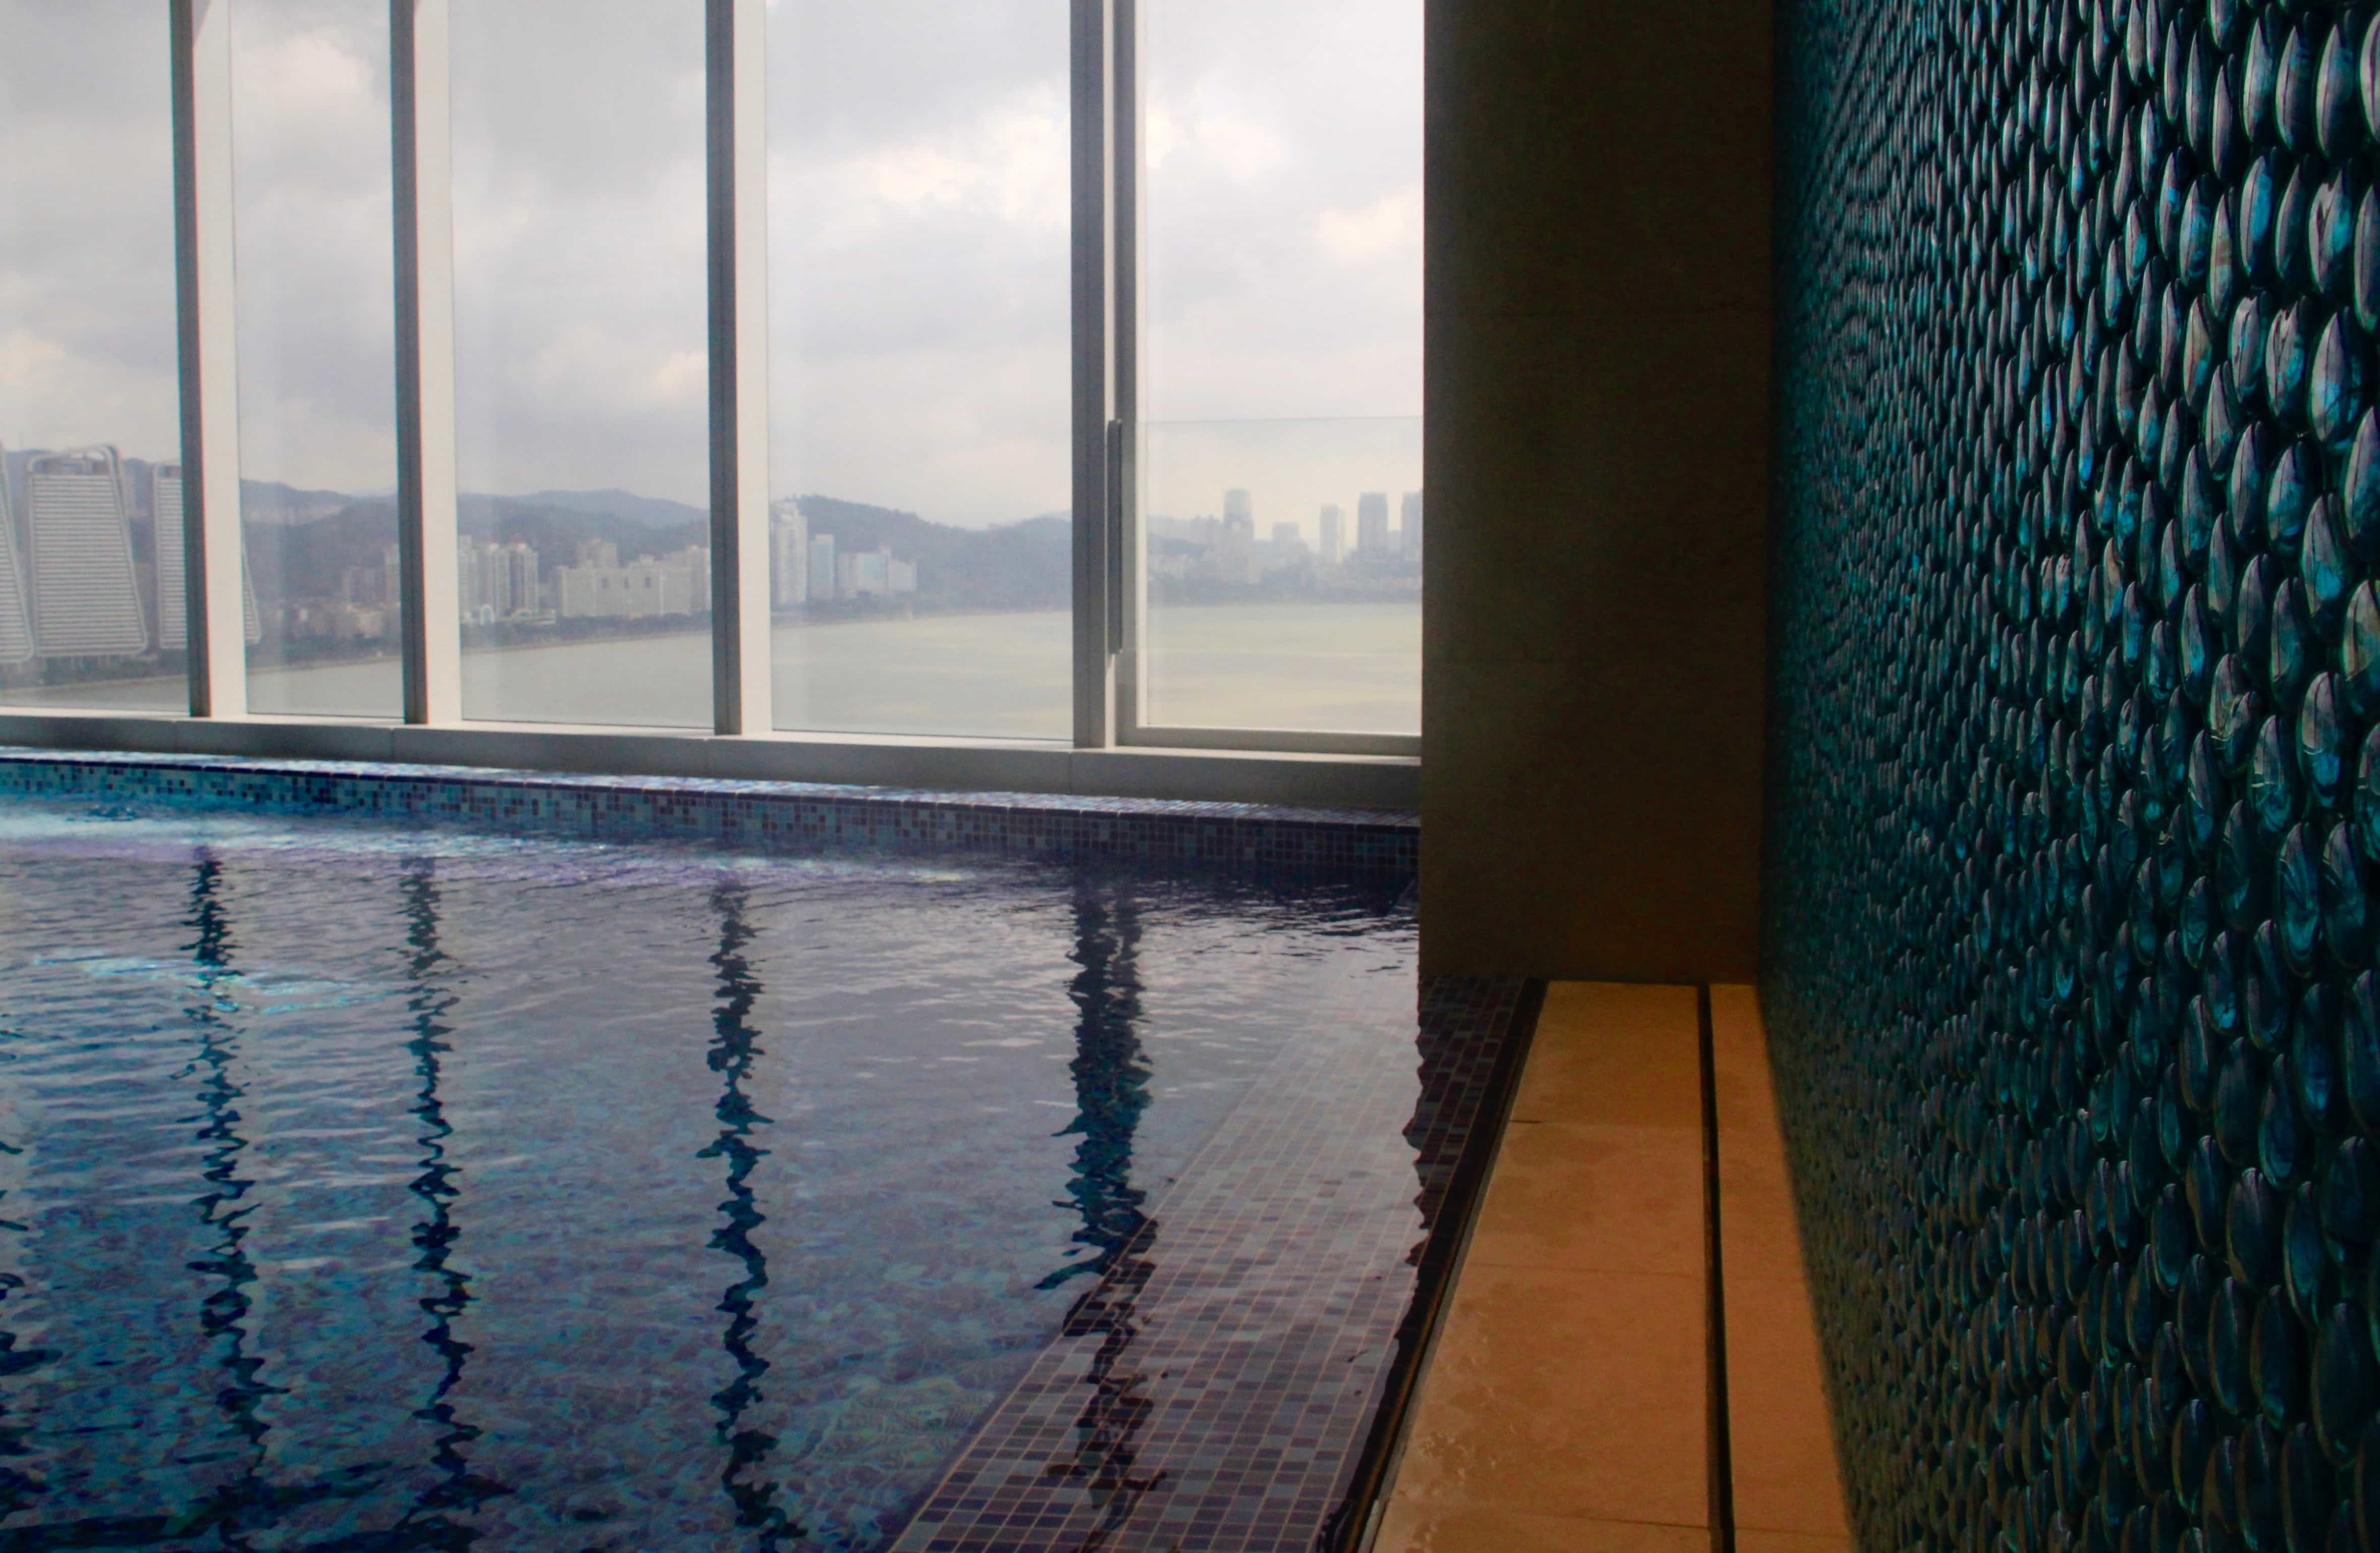 In a country full of glitz and glam, you might as well sleep in style. The exquisite Crowne Plaza Macau exudes the highest level of comfort and class. Read more at www.thefivefoottraveler.com